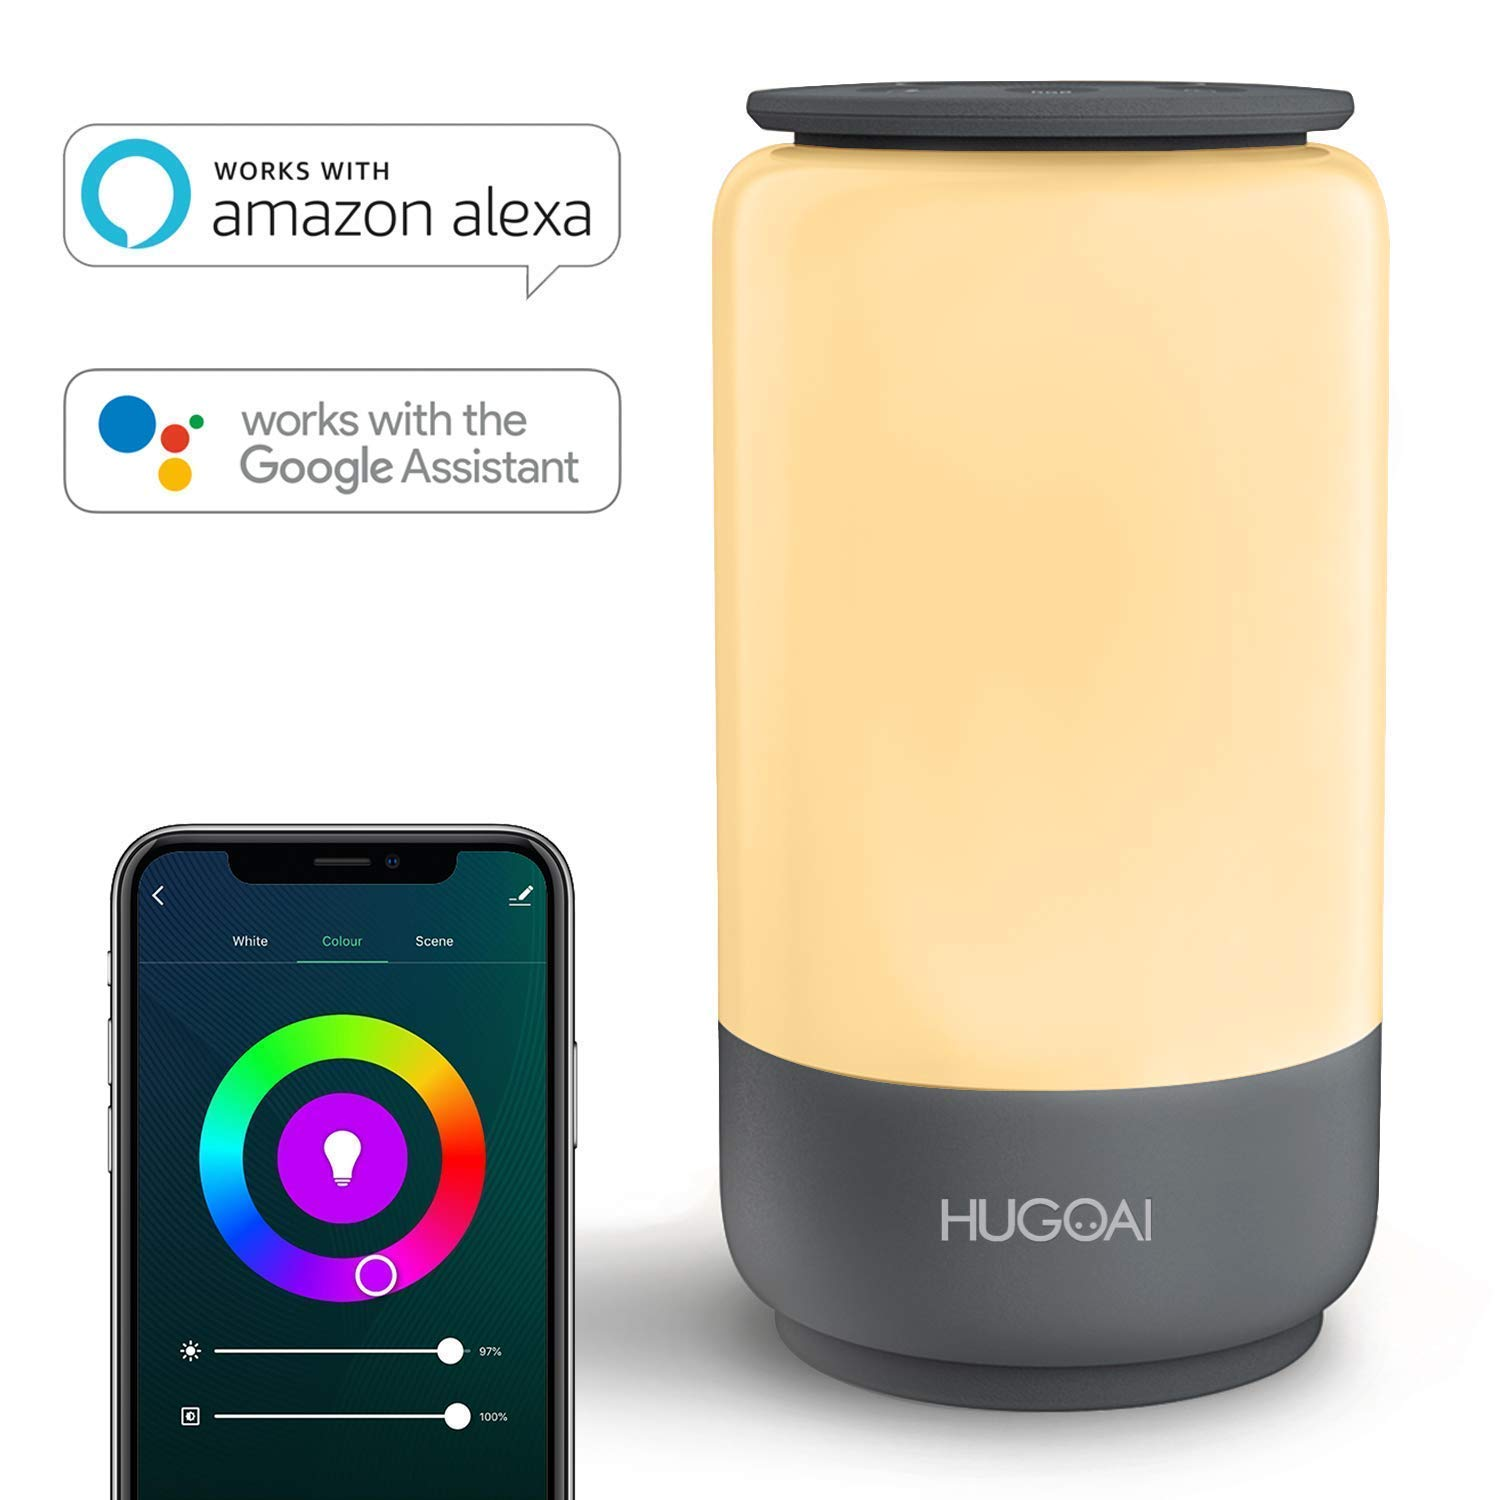 Smart LED Table Lamp, HUGOAI Nursery Night Light for Kids, Dimmable Bedside Lamp for Bedroom, Remote Control via App, No Hub Required, Works with Alexa and Google Home - Grey